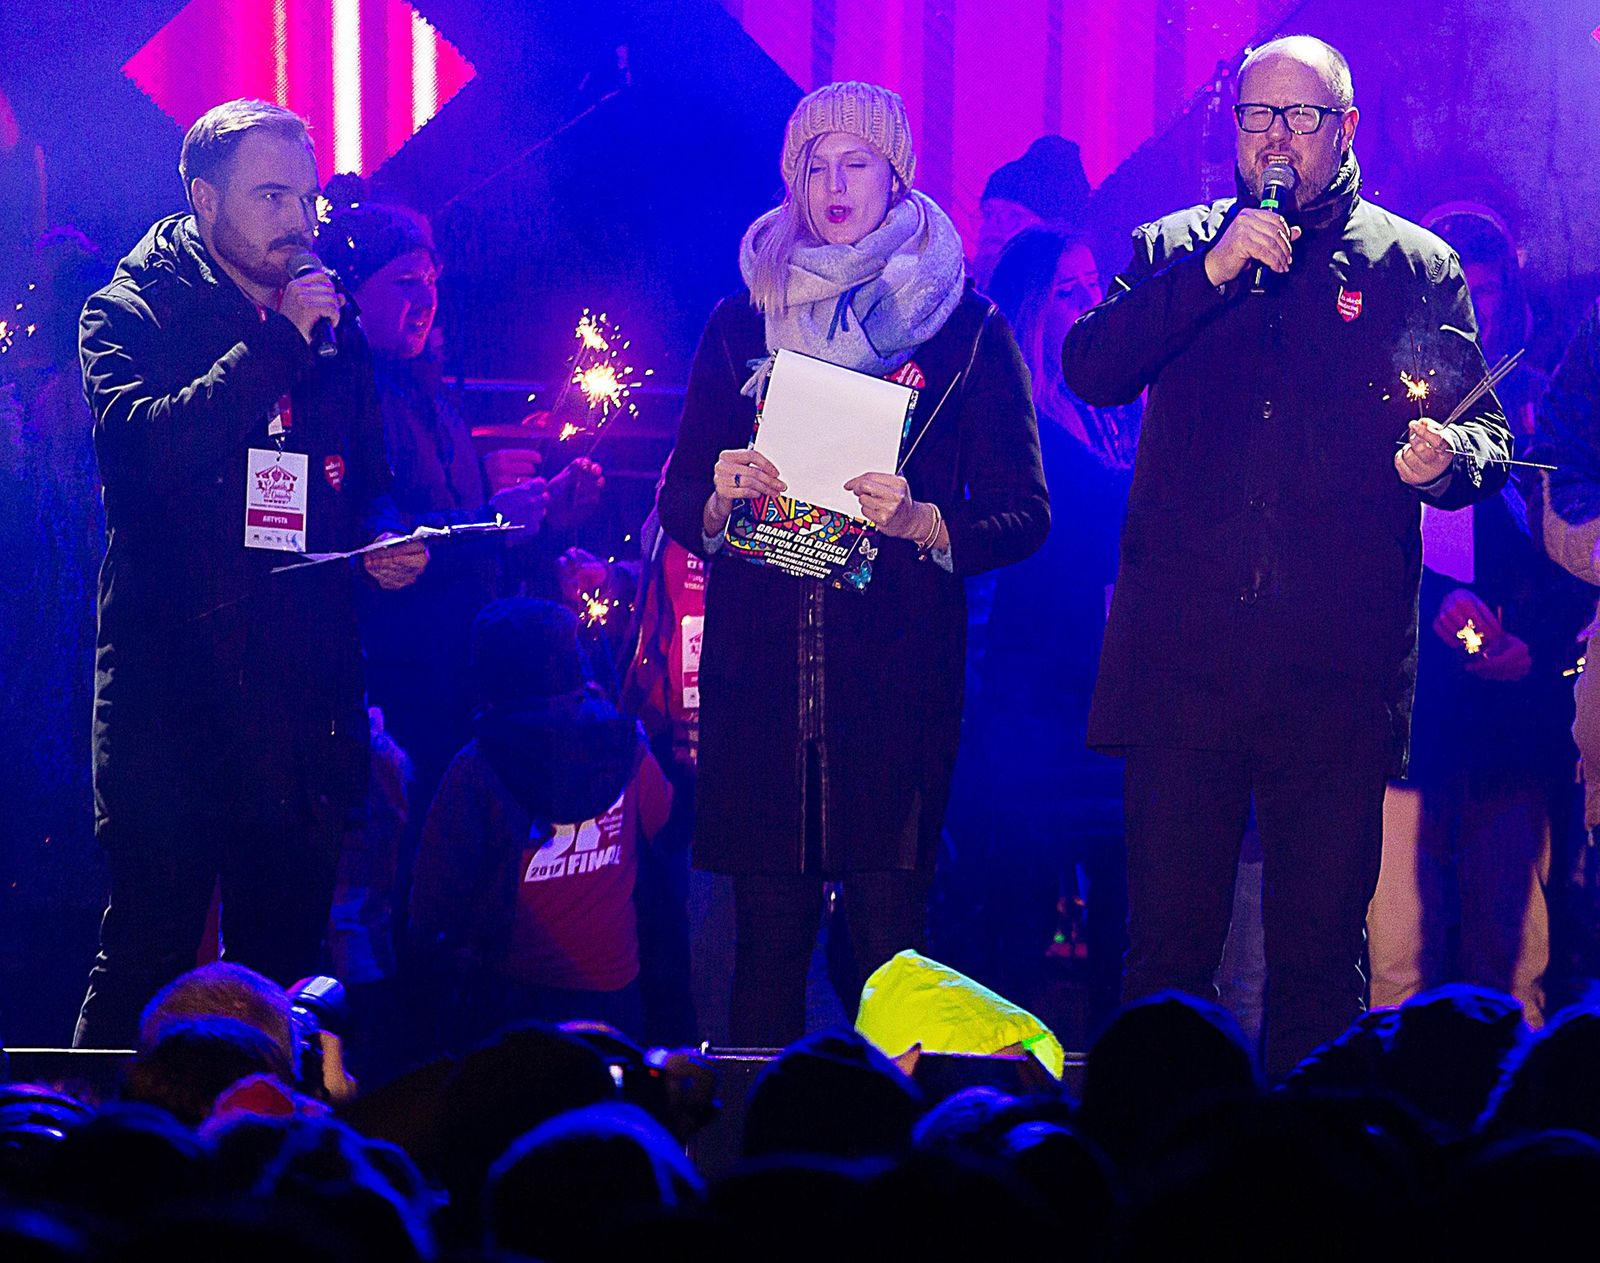 Gdansk Mayor Pawel Adamowicz,right, far right, speaks to an audience shortly before he was stabbed in Gdansk, Poland, on Sunday Jan. 13, 2019. Adamowicz was taken to a hospital in very serious condition after the attack and underwent surgery.   (AP Photo/Anna Rezulak/KFP) POLAND AUT